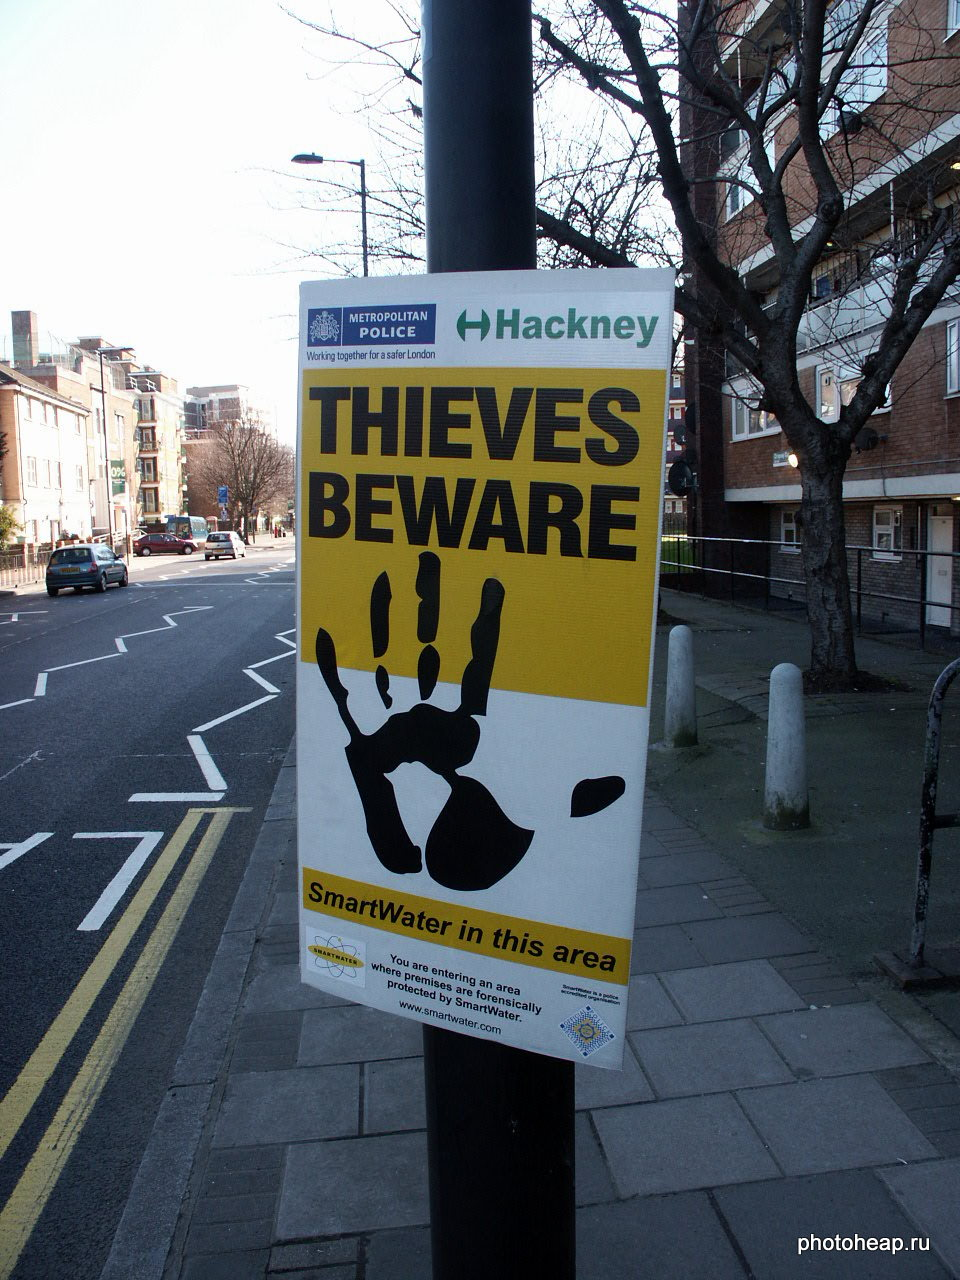 Thieves beware. SmartWater in this area.